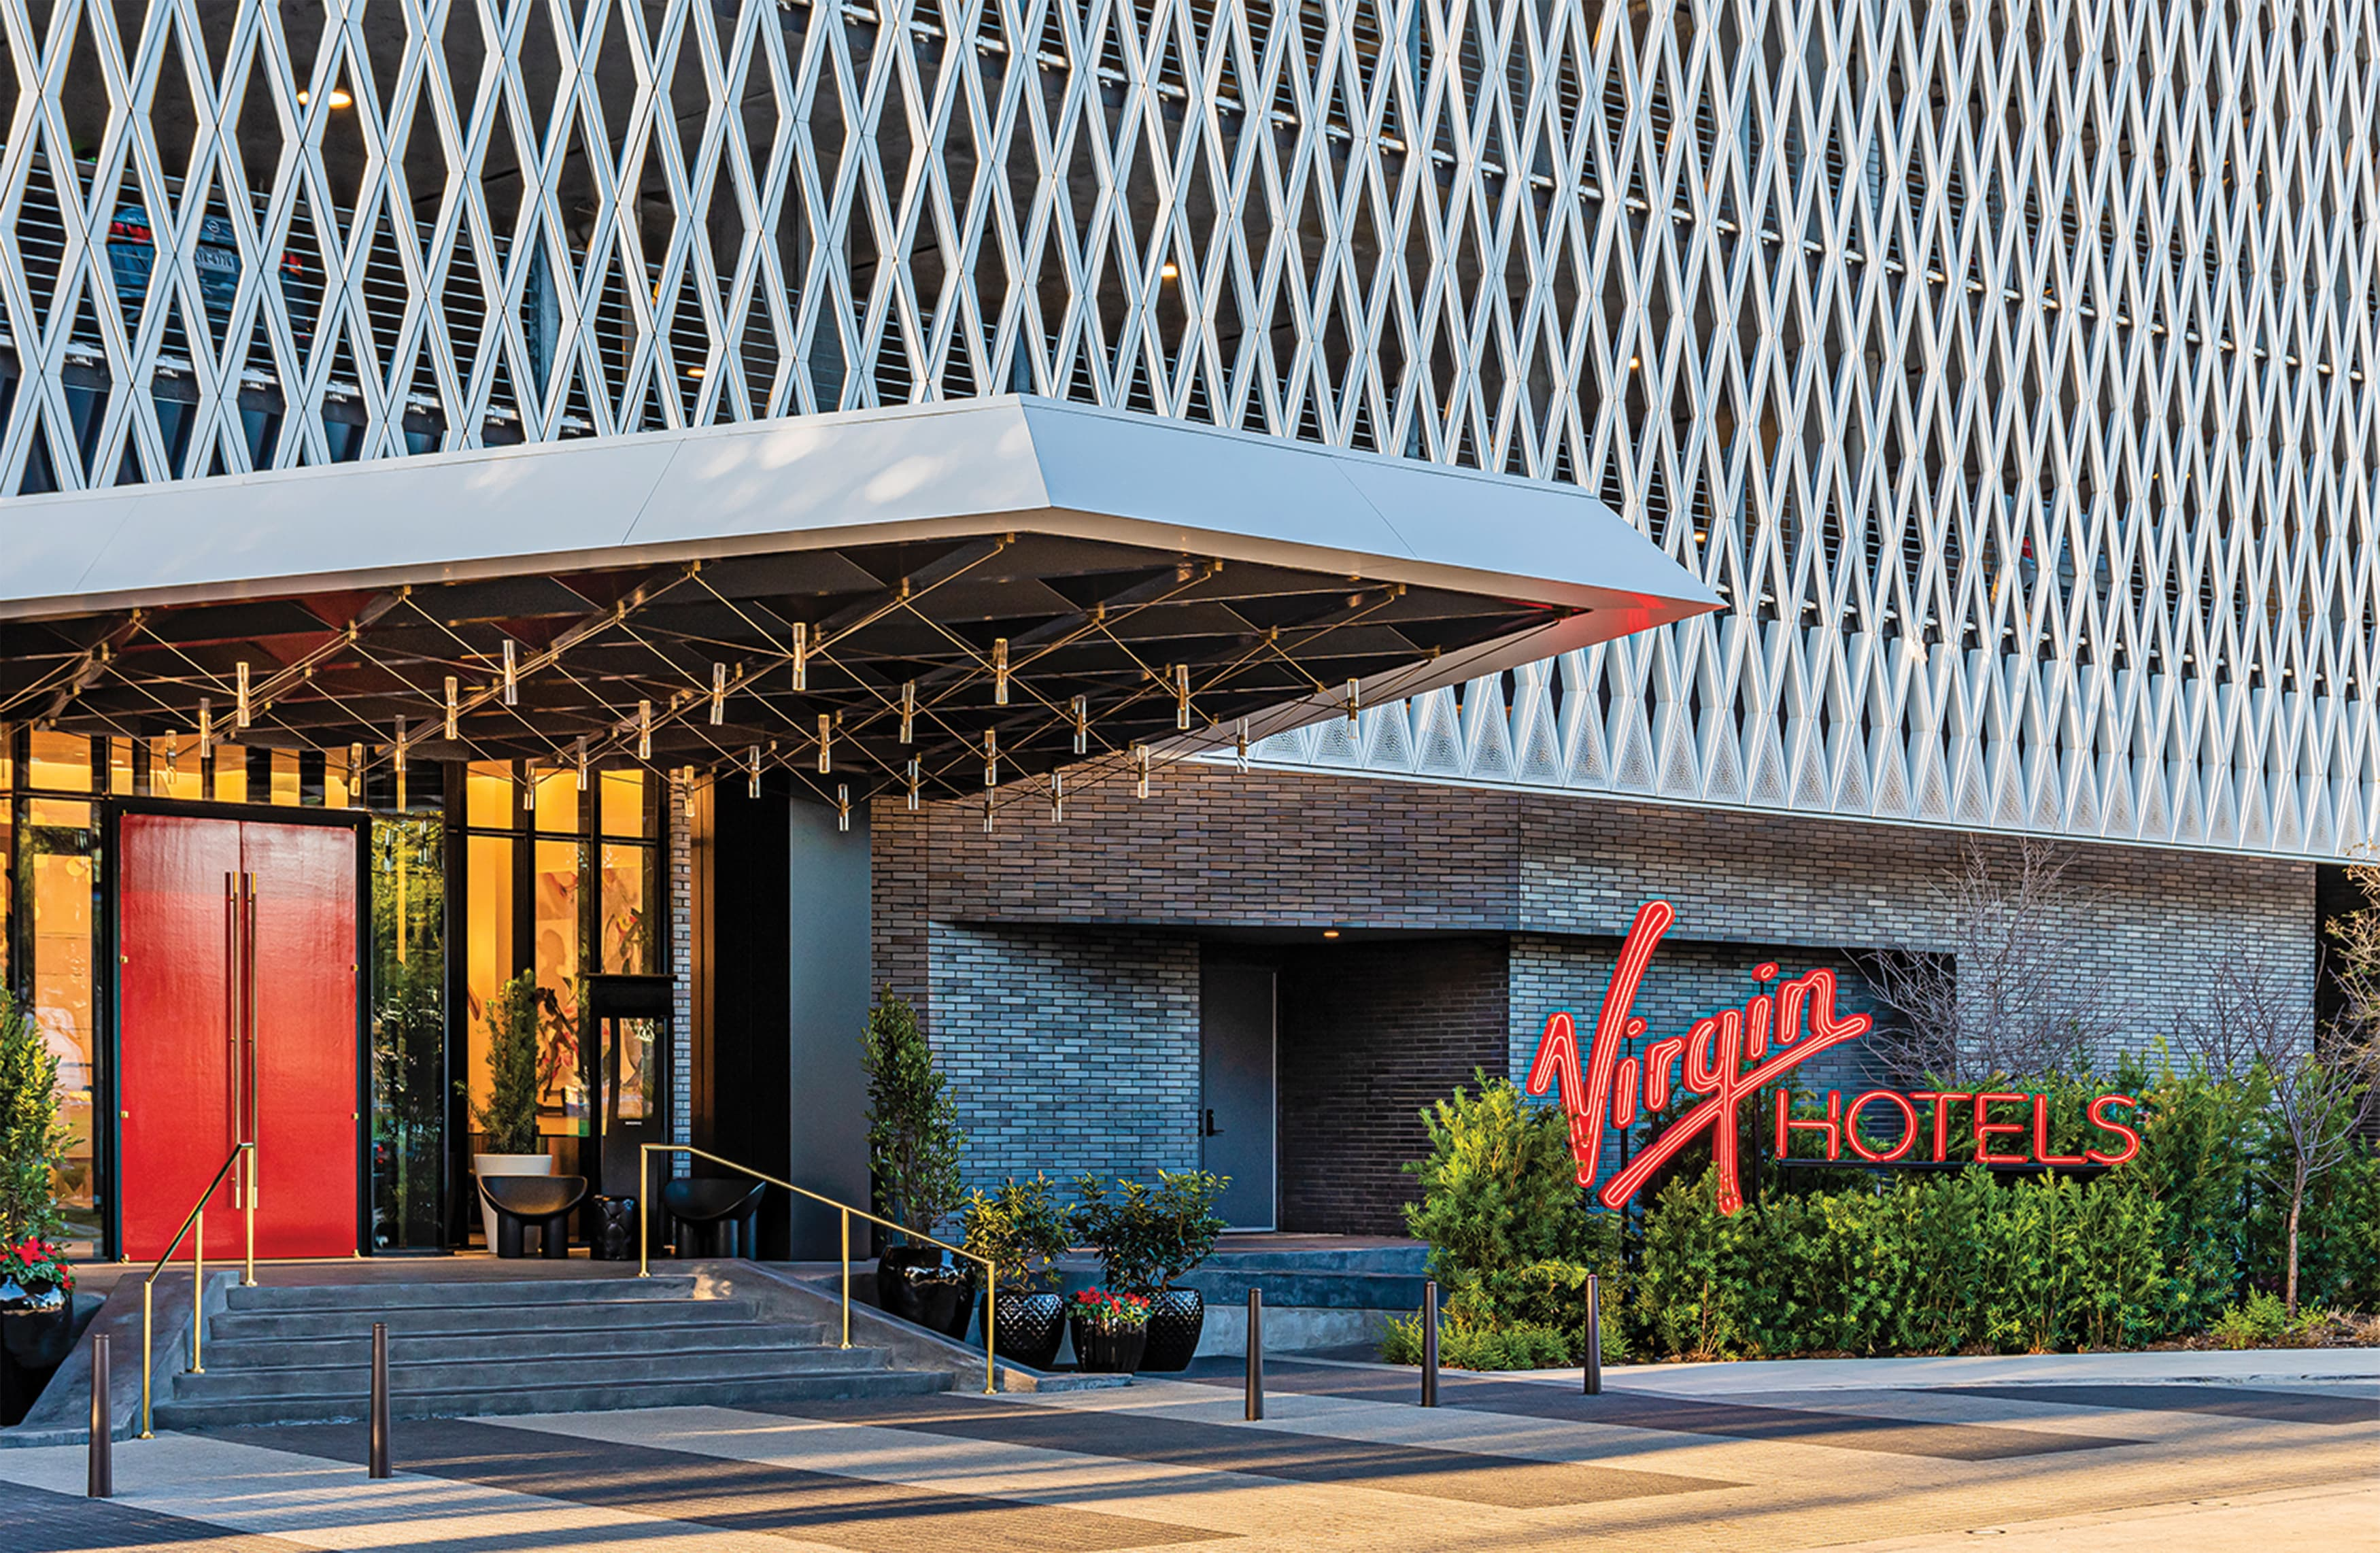 Virgin Hotels Exposed Neon Hospitality Signage